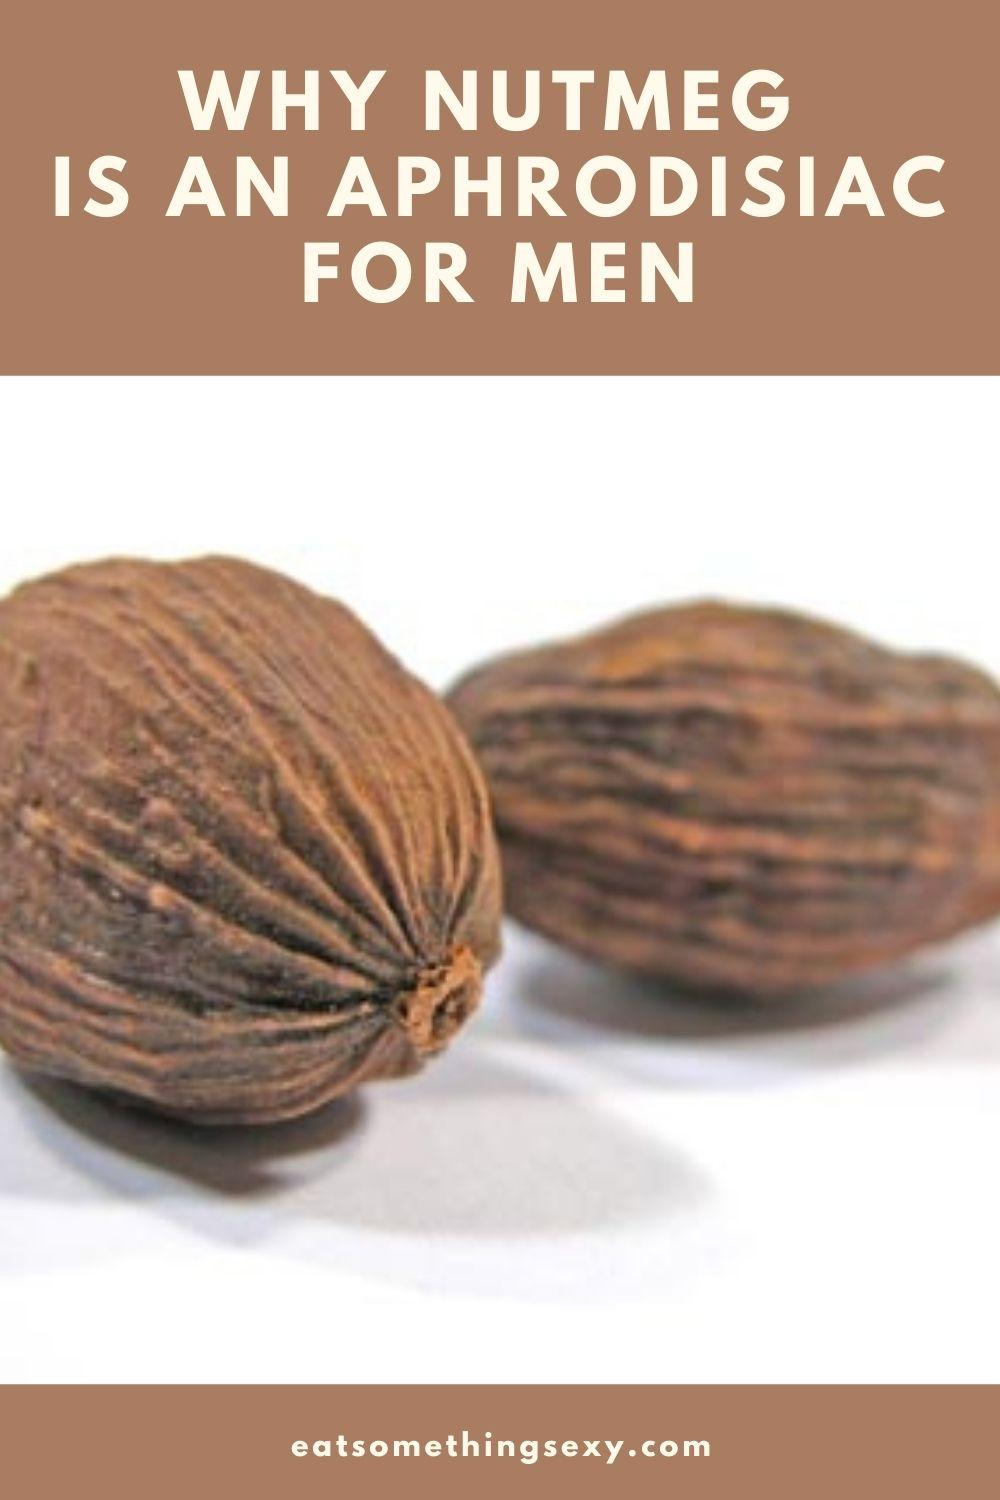 Nutmeg benefits for men graphic